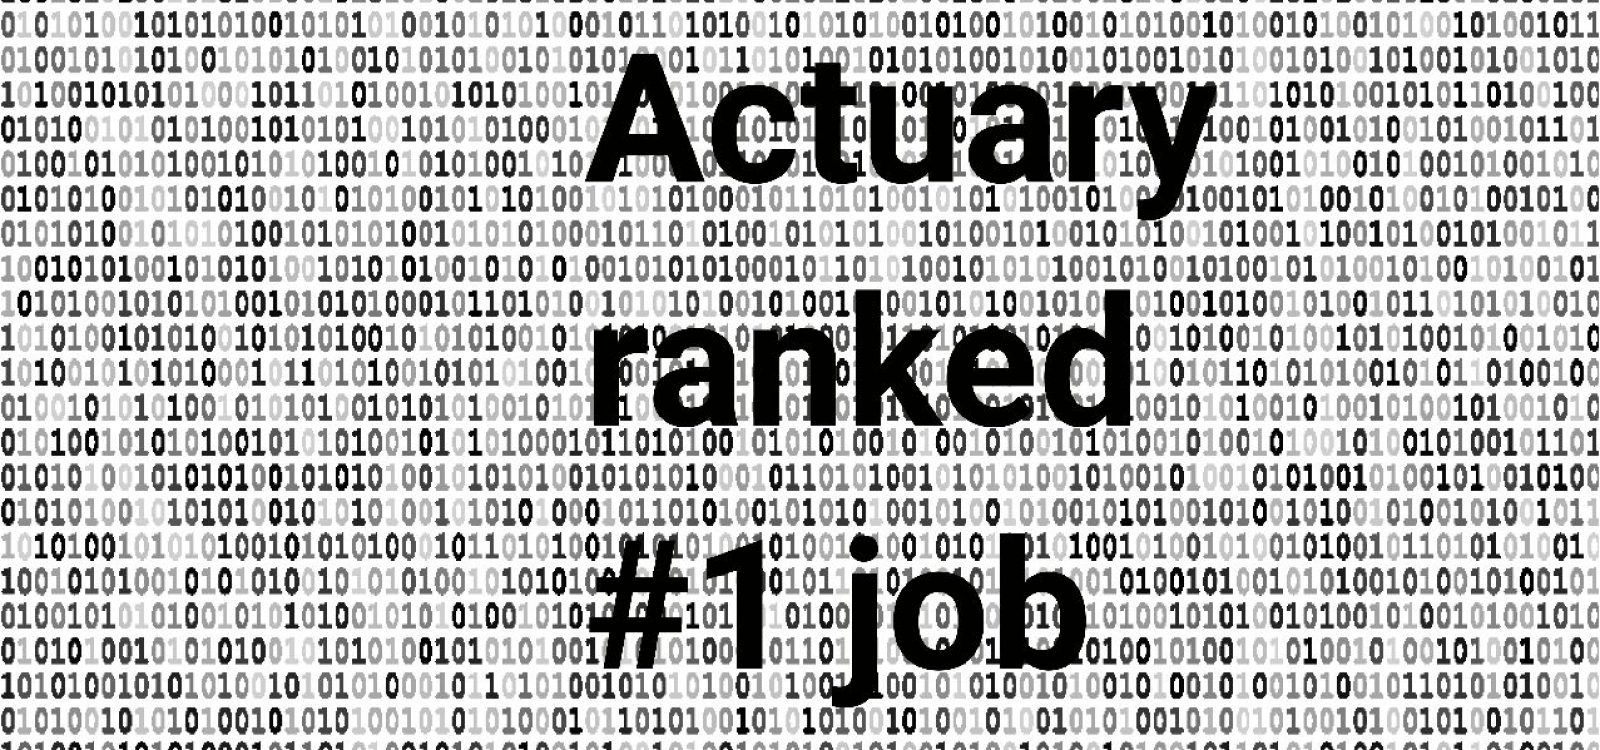 It's official – being an actuary is the best job!